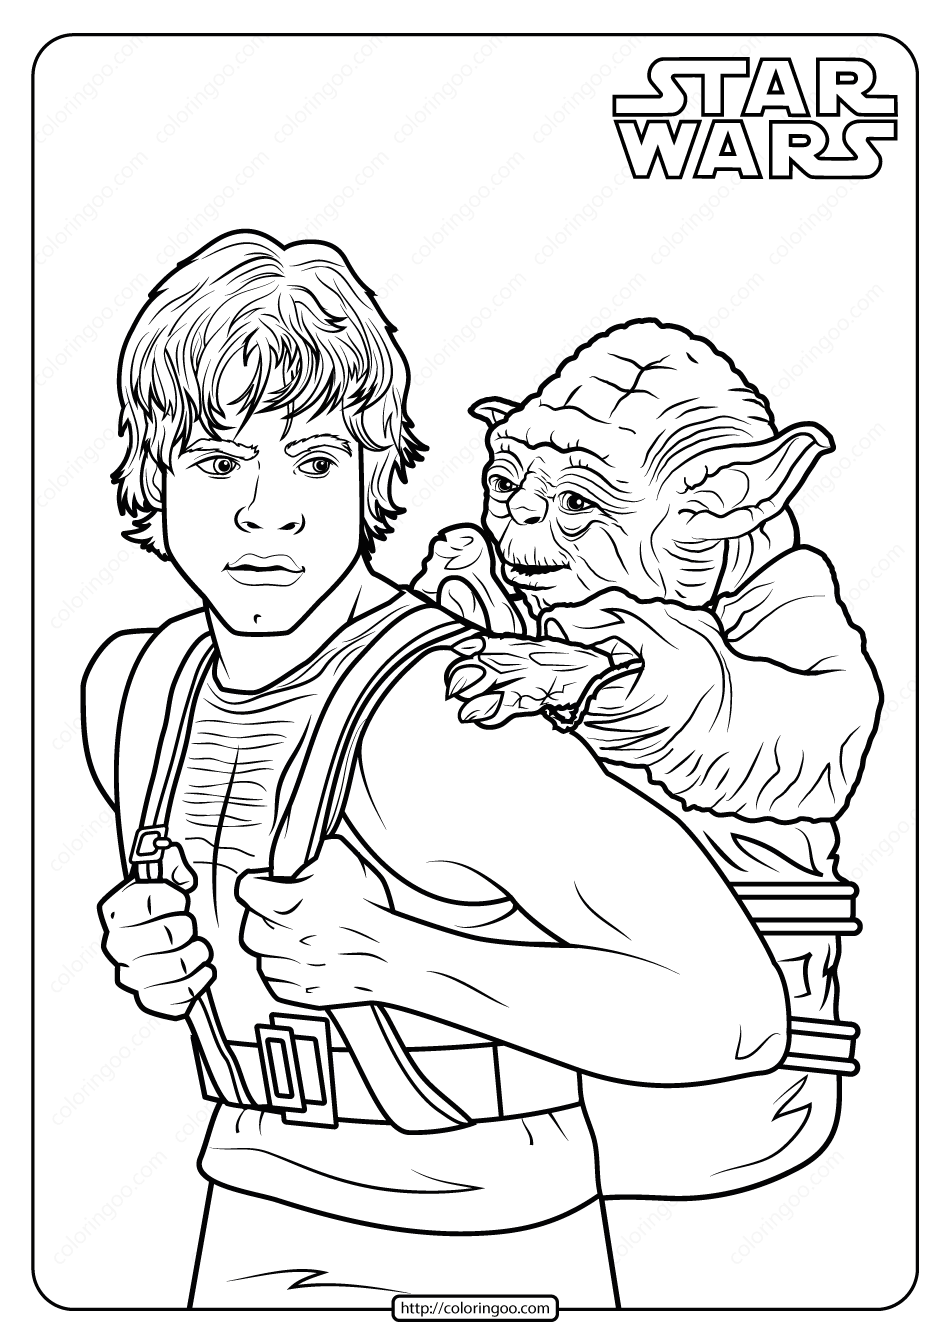 Printable Star Wars Luke And Yoda Coloring Pages In 2020 Star Wars Coloring Sheet Star Wars Activities Star Wars Colors